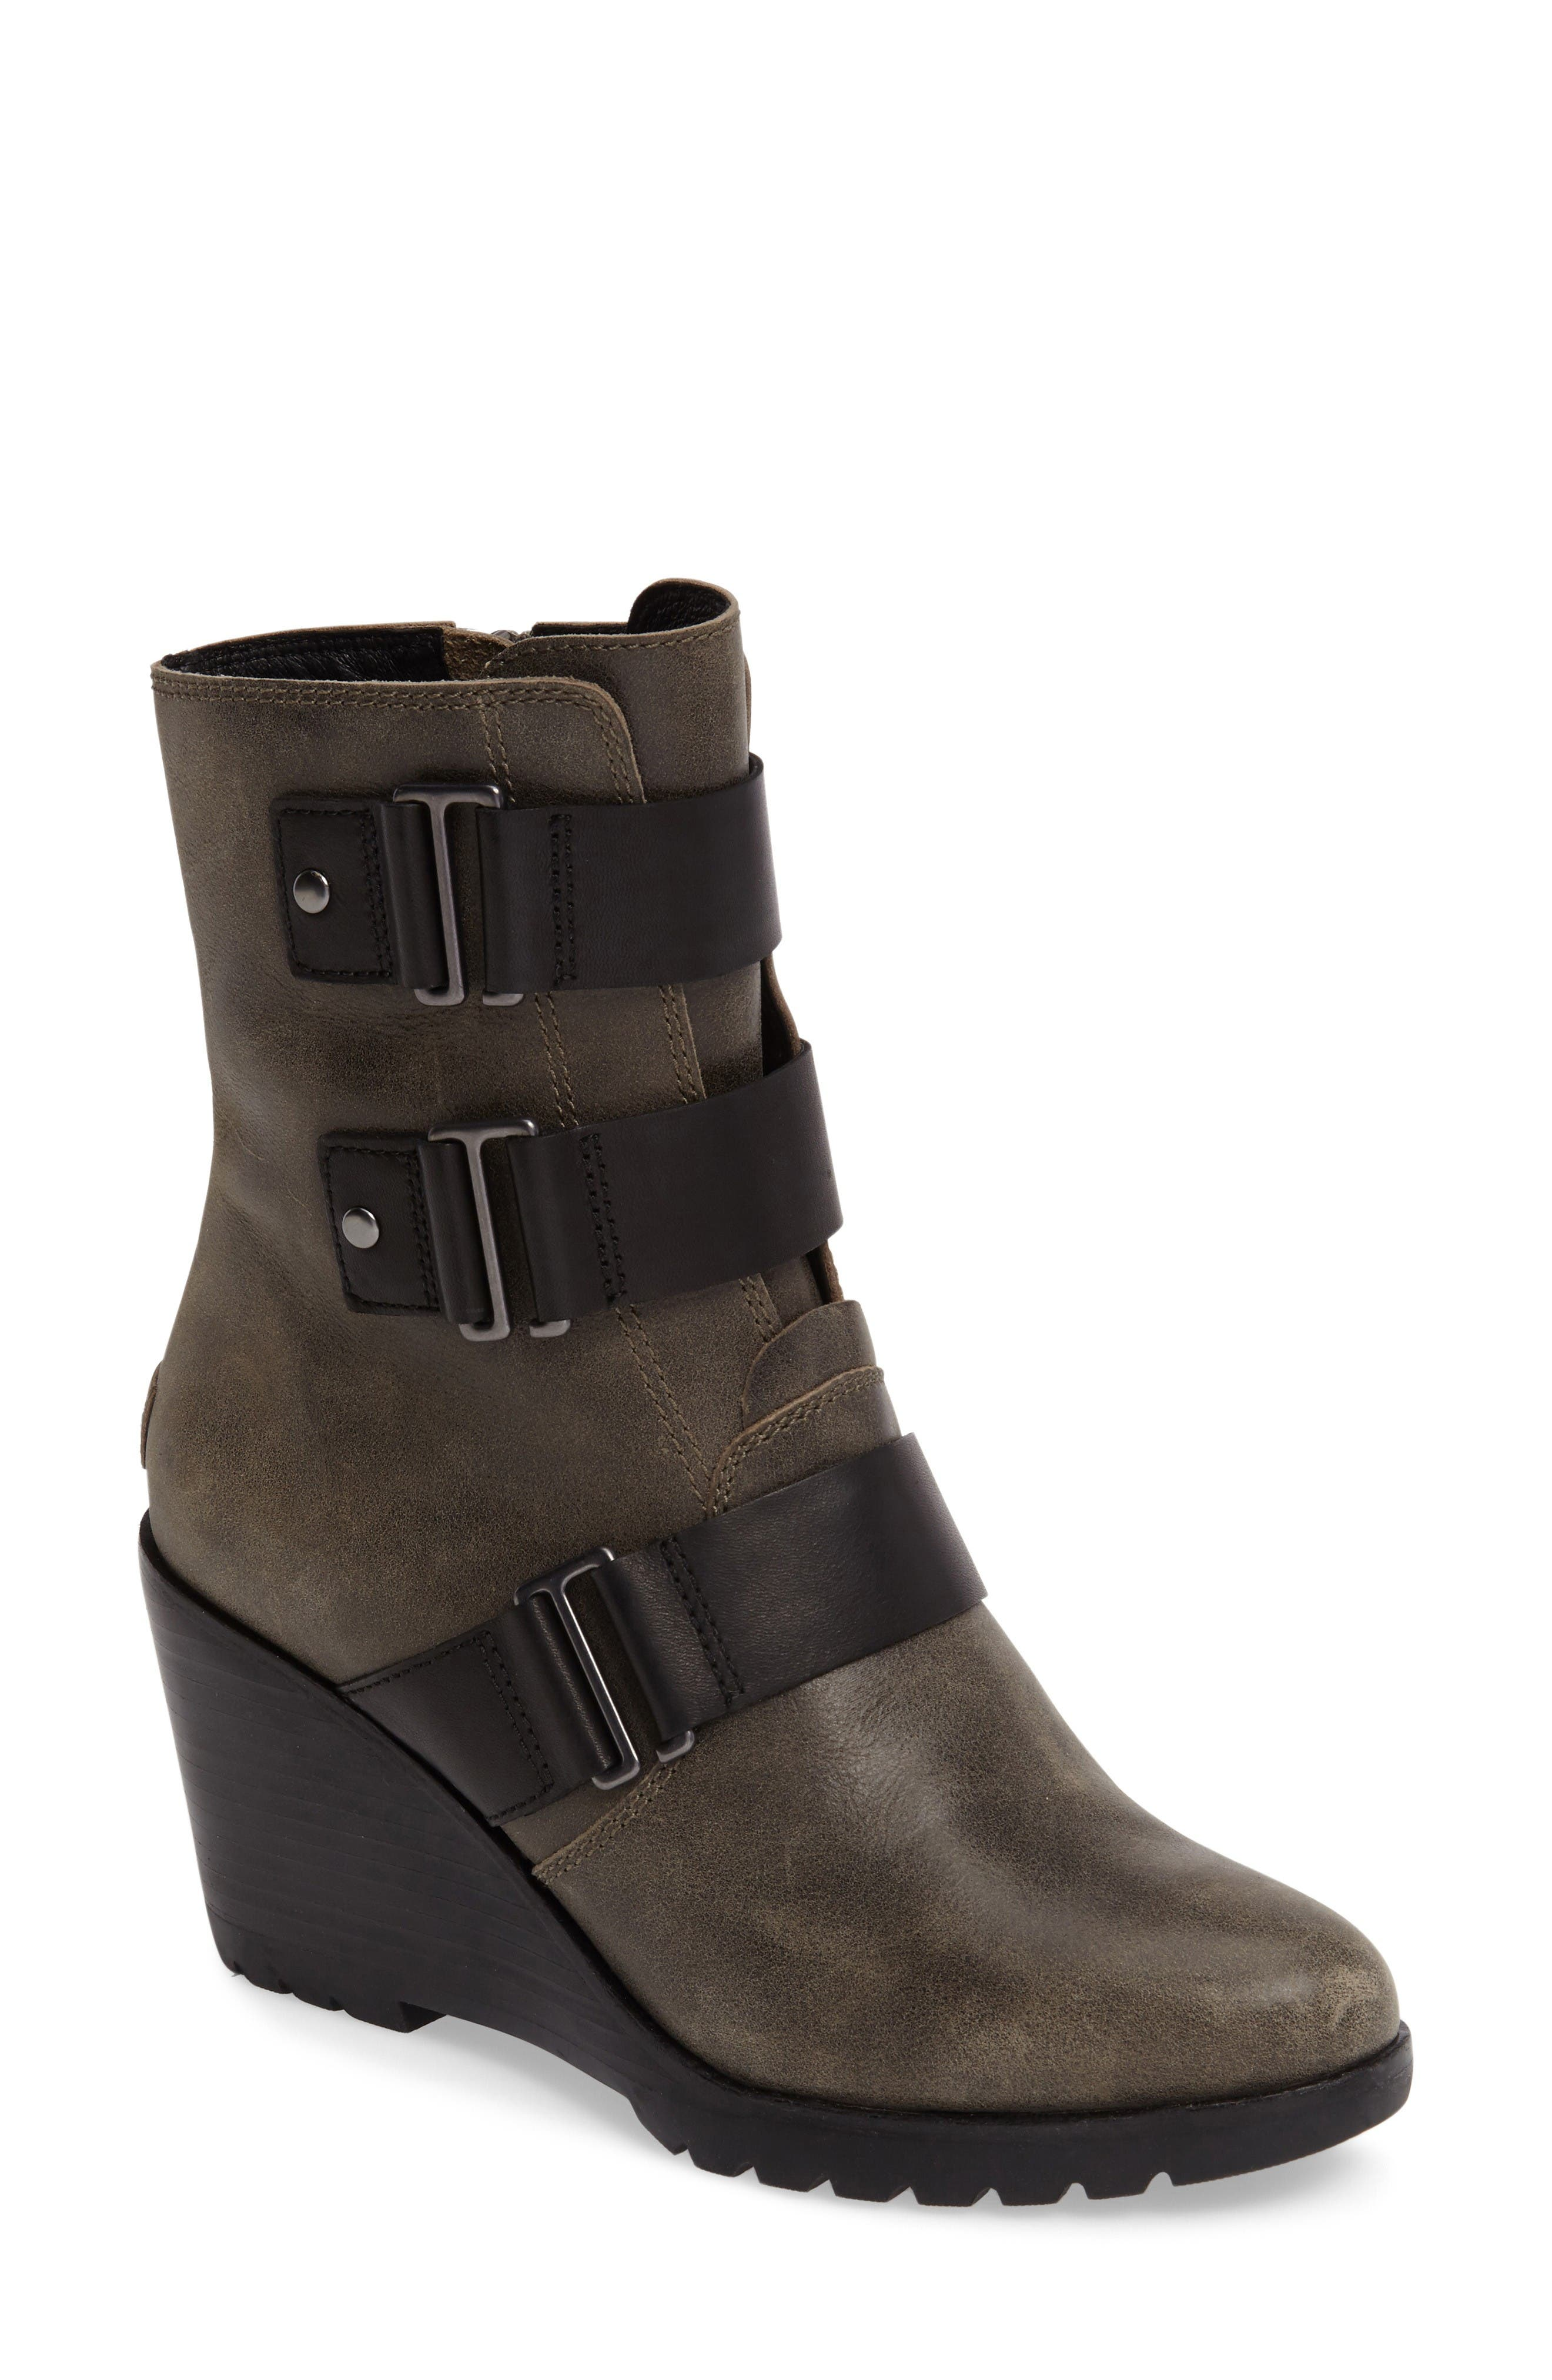 After Hours Waterproof Bootie,                         Main,                         color, Kettle/ Black